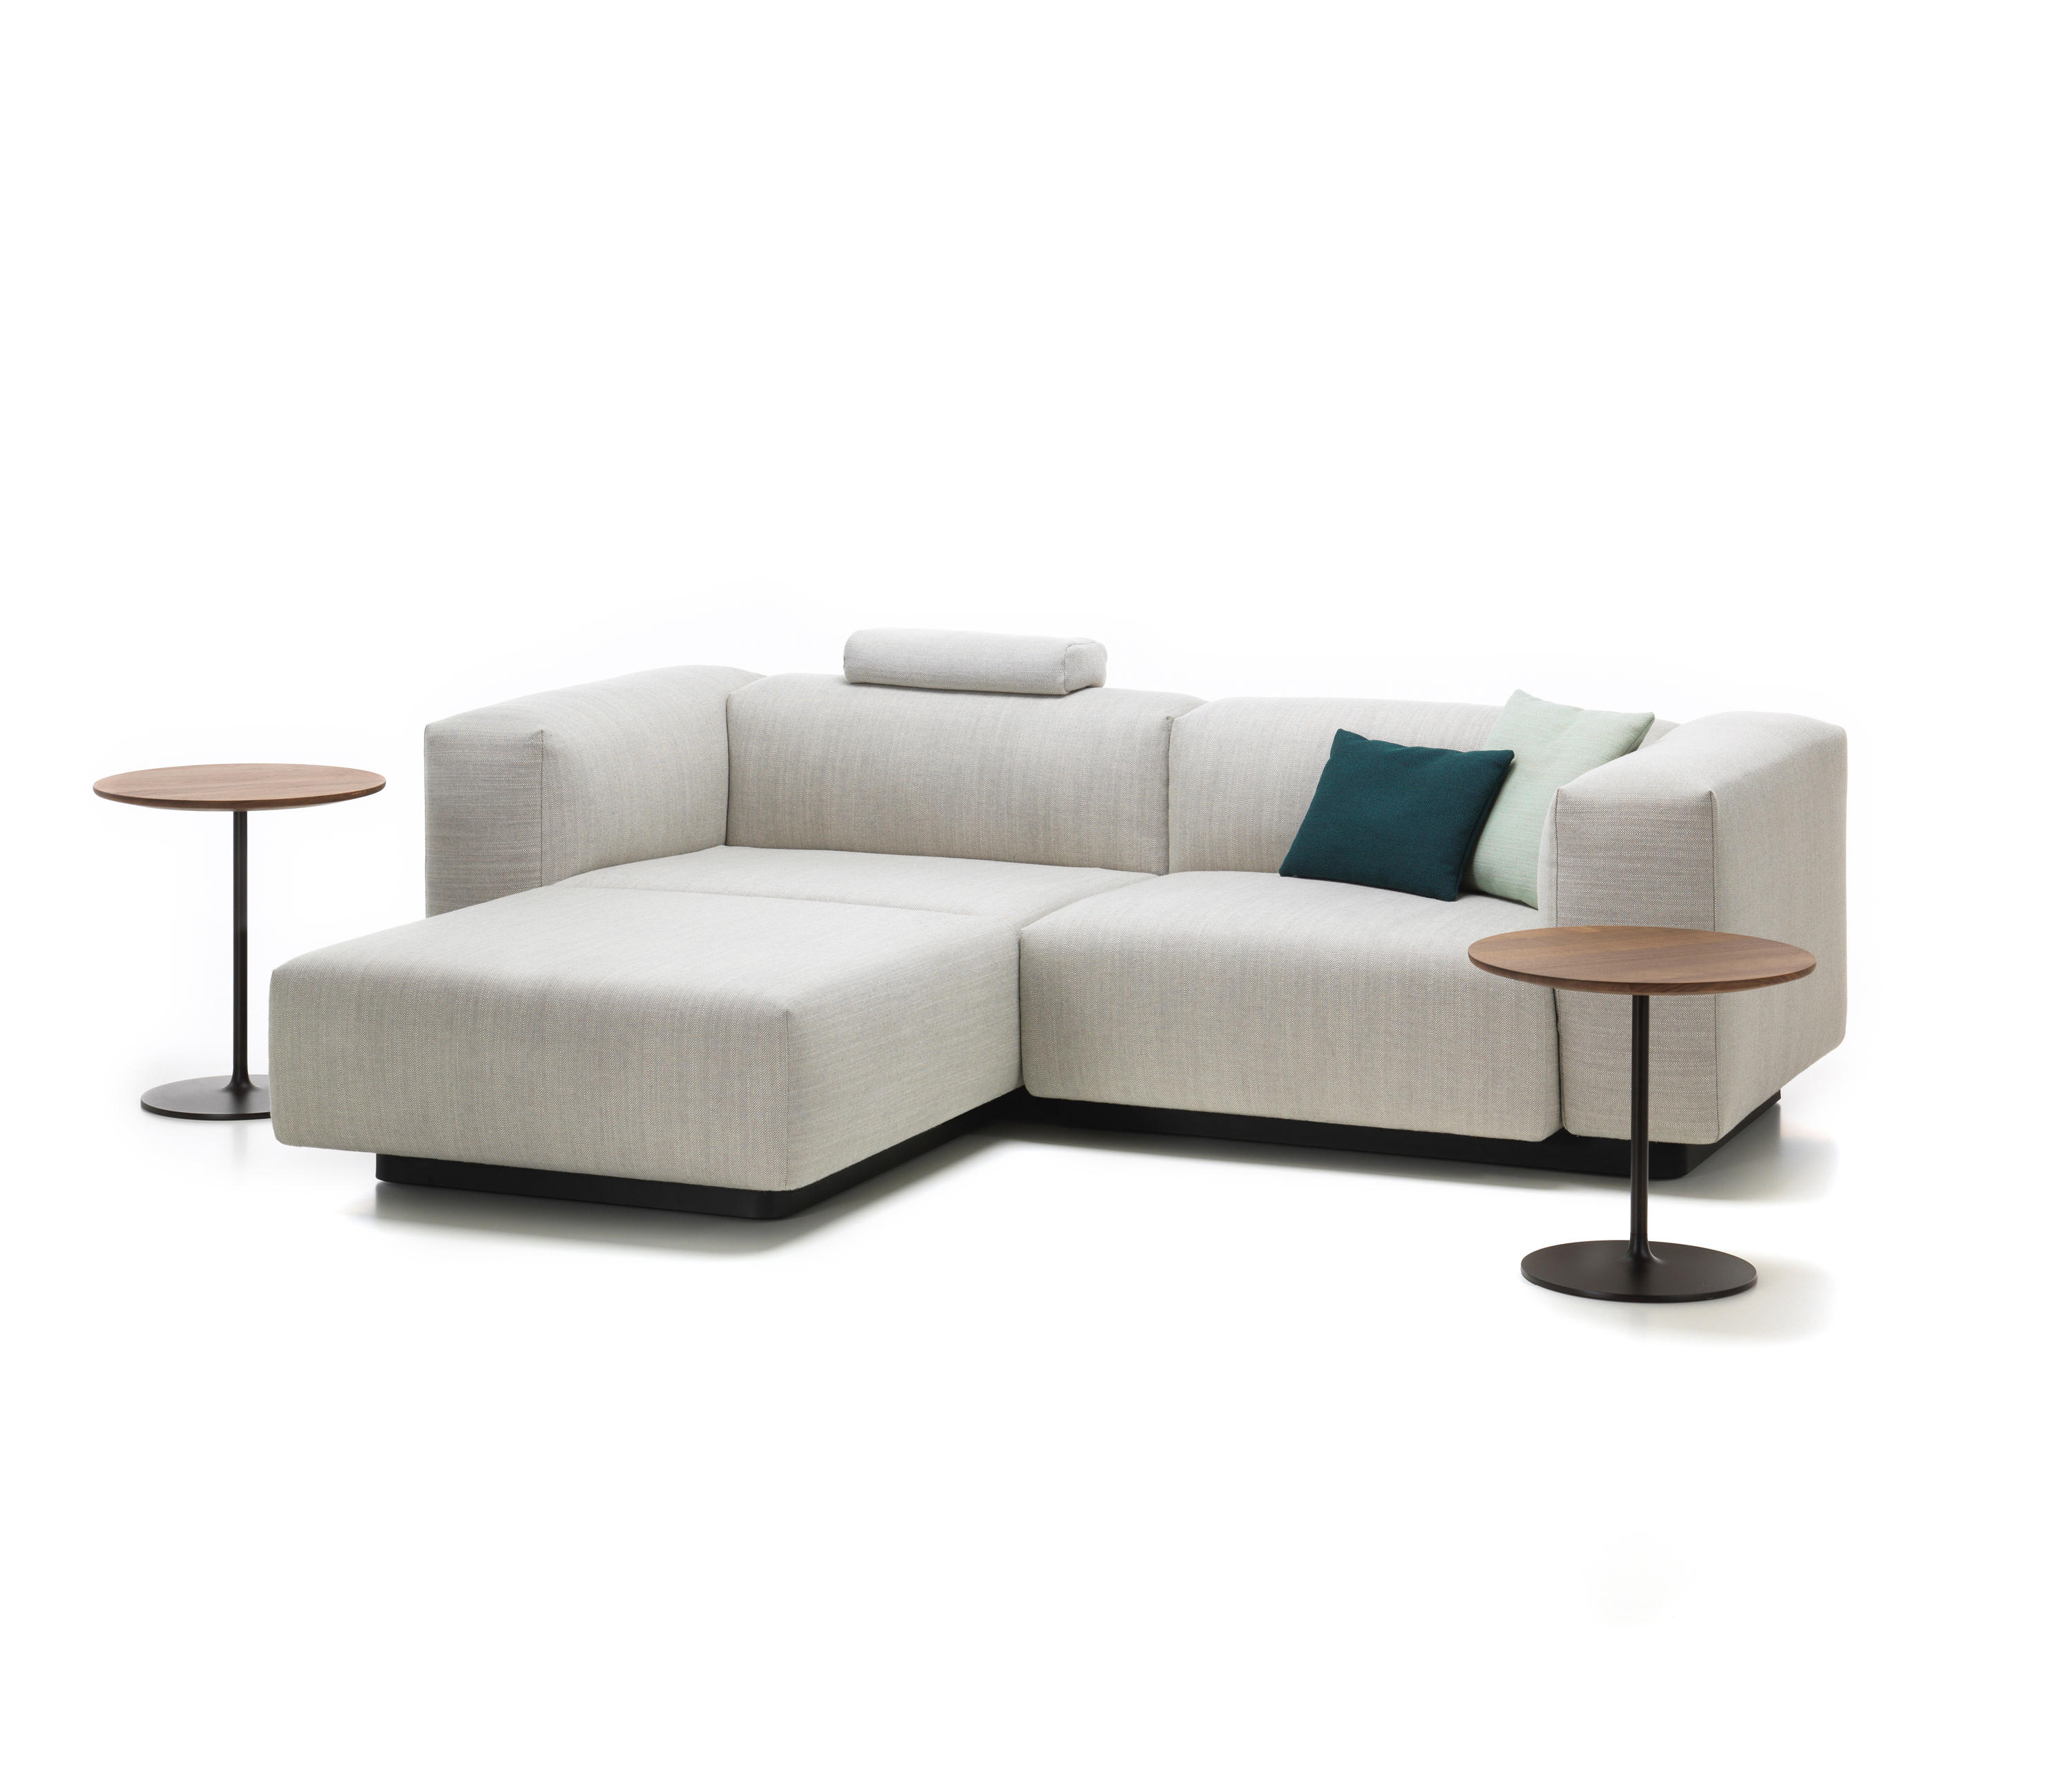 SOFT MODULAR SOFA 2 SEATER CHAISE LONGUE Sofas from